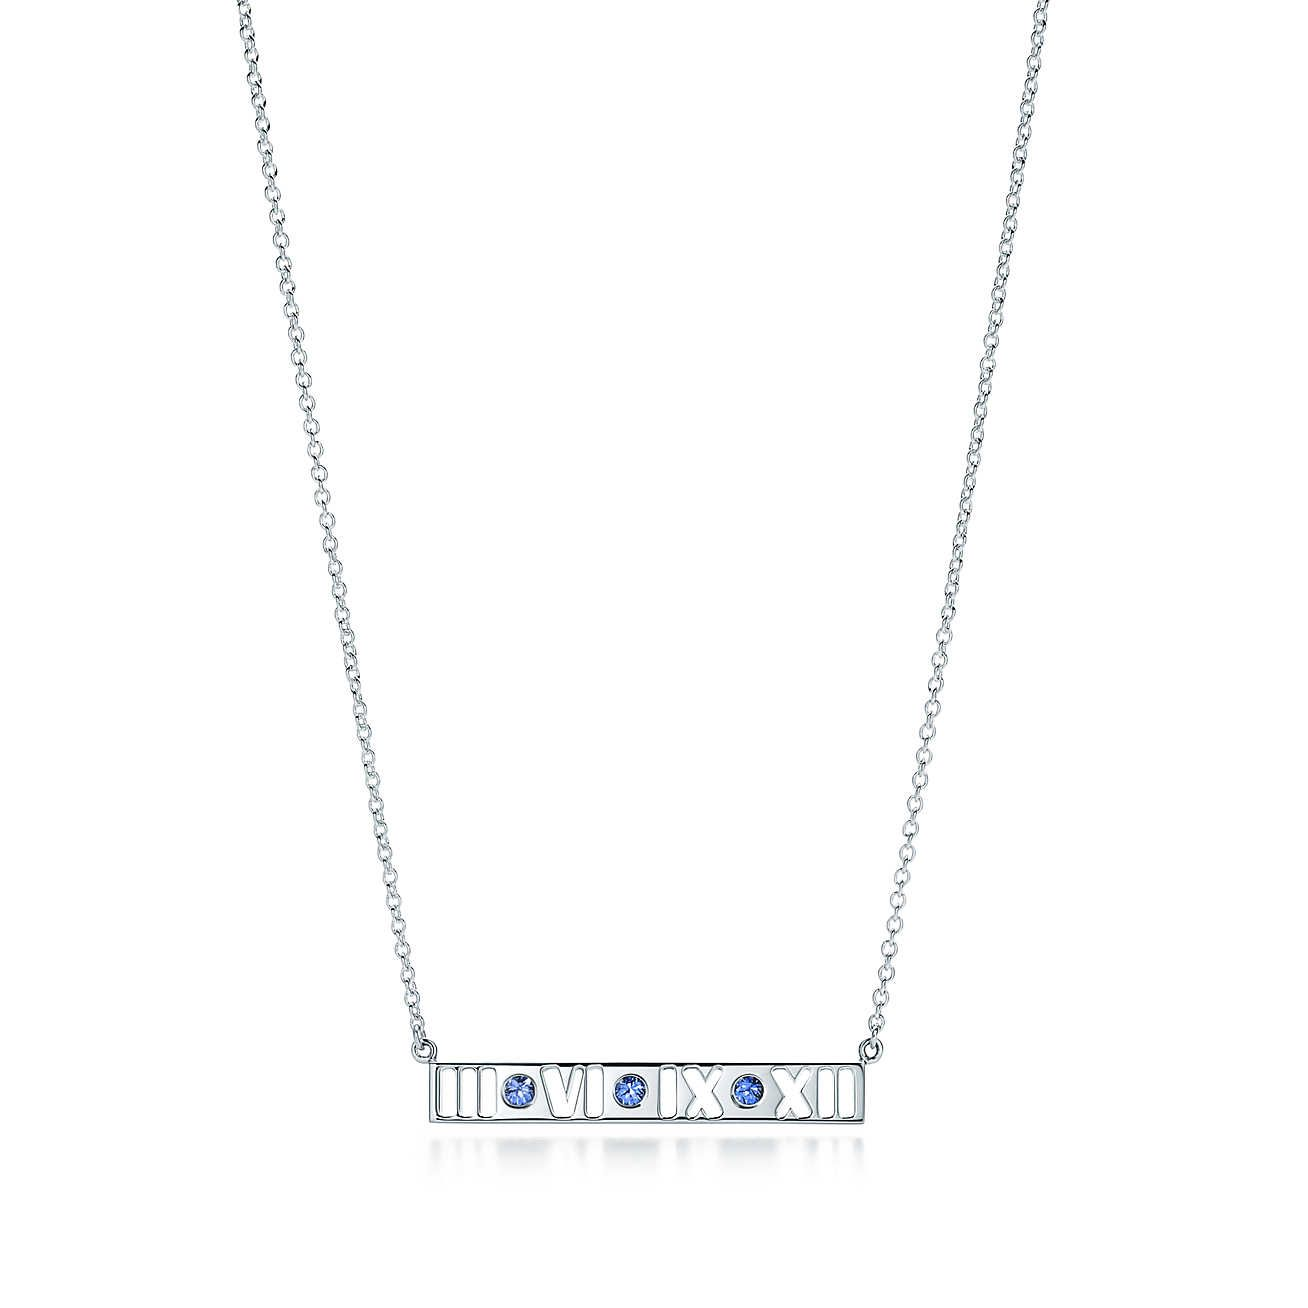 65b1a2d70 ... bar pendant in sterling silver with Montana sapphires. Atlas® pierced bar  pendant in sterling silver with Montana sapphires. Bar Necklace, Tiffany